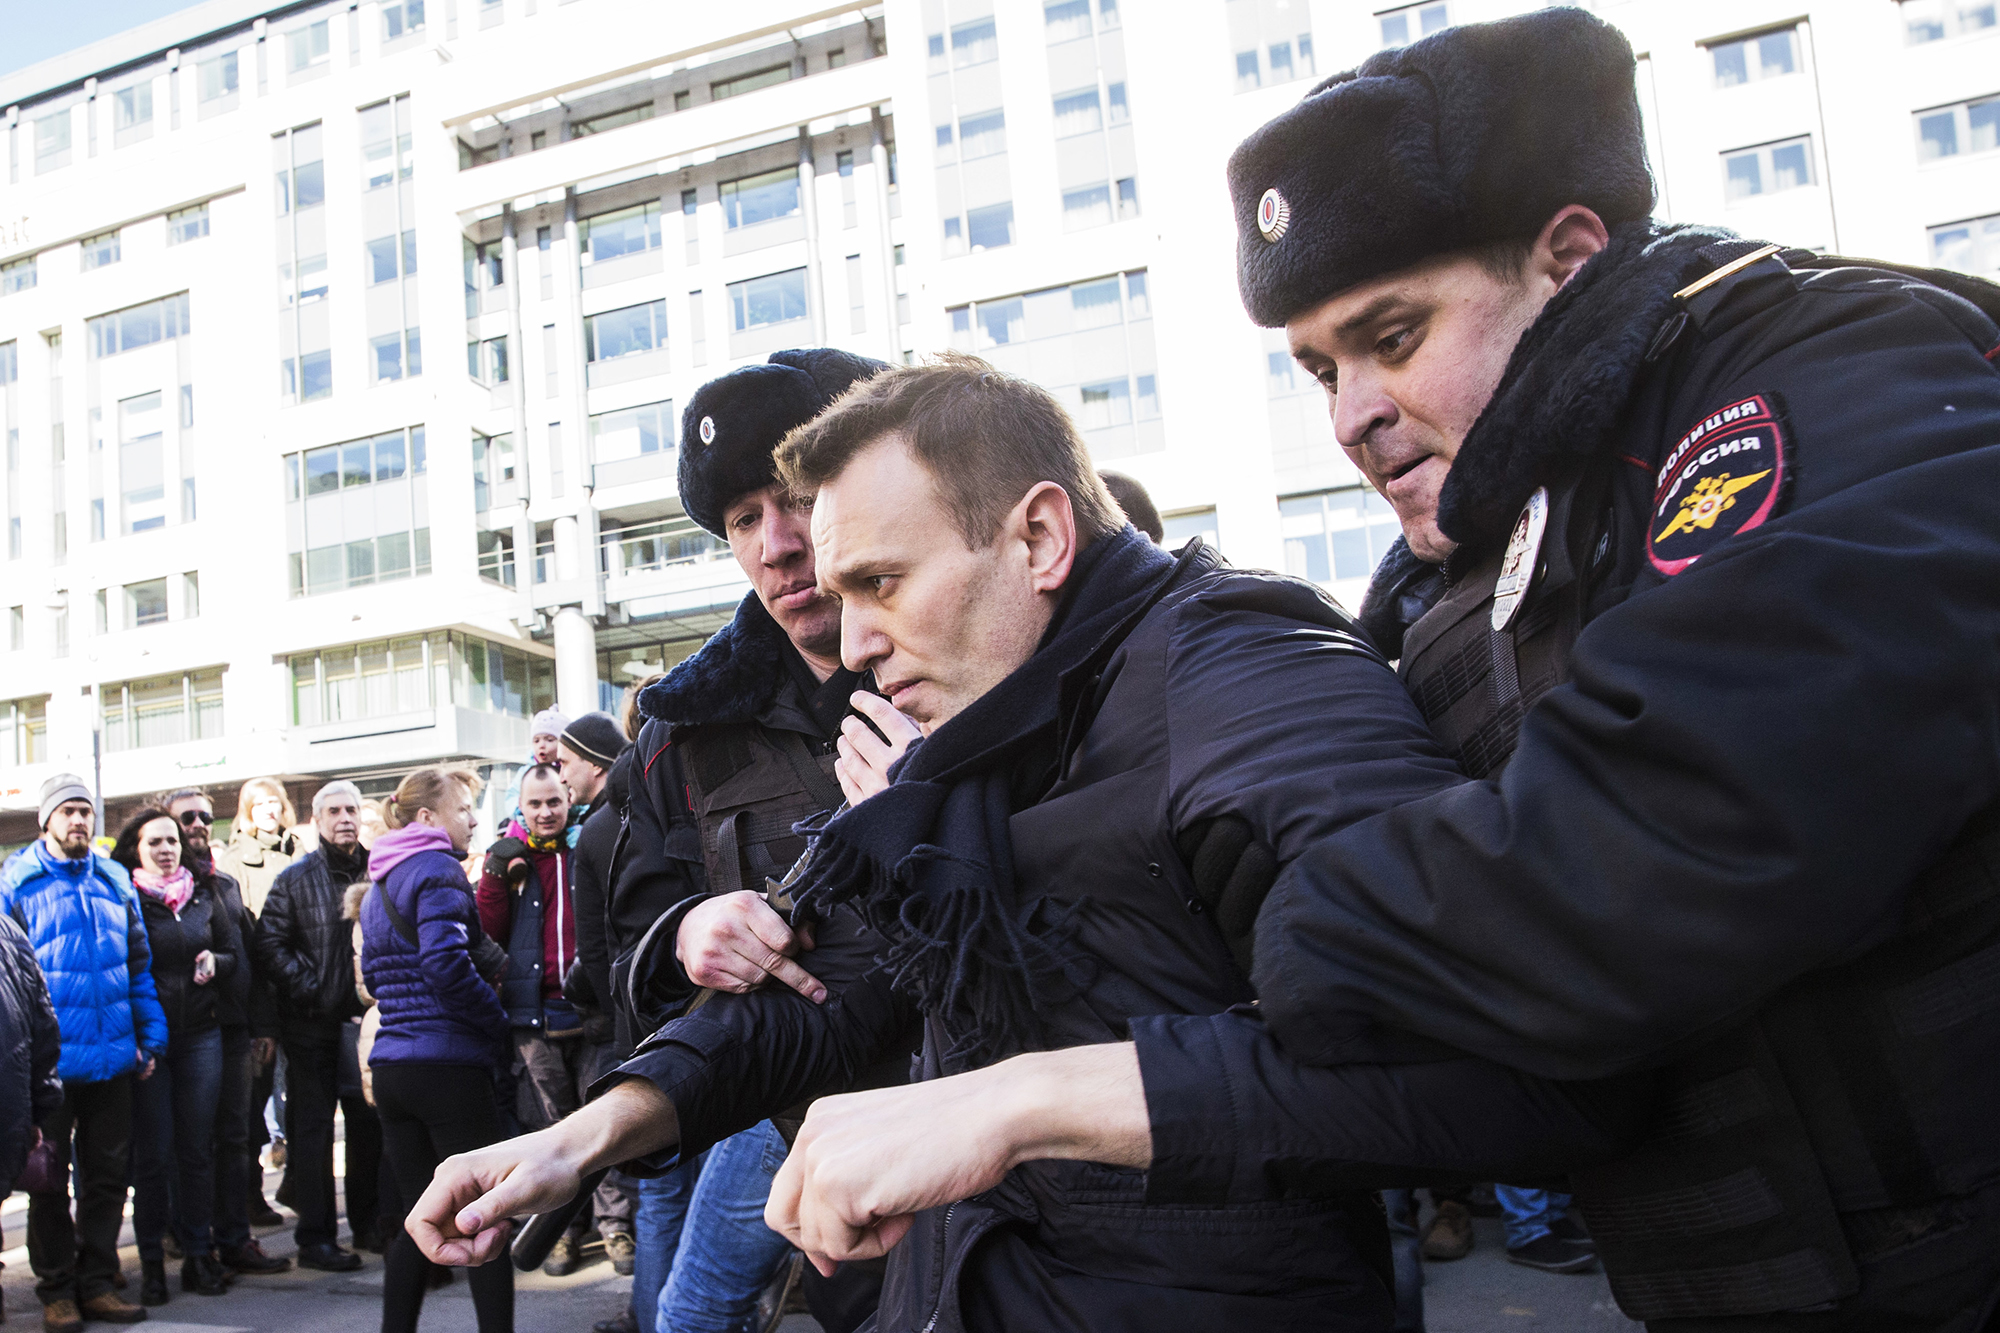 Alexei Navalny is detained by police in downtown Moscow, Russia, on March 26, 2017.